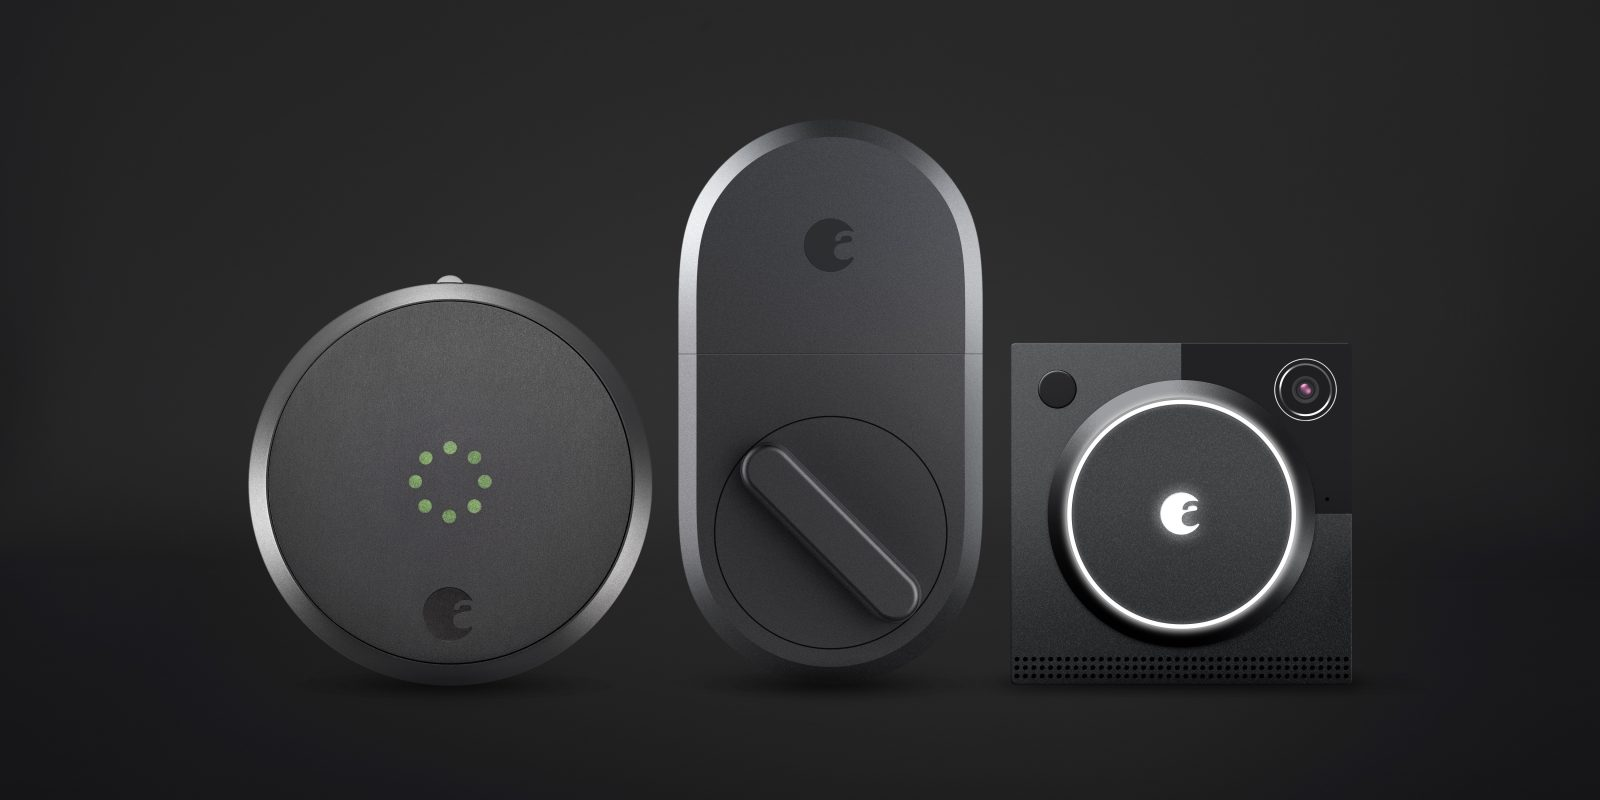 Review: August Smart Lock Pro works with HomeKit and Z-Wave Plus